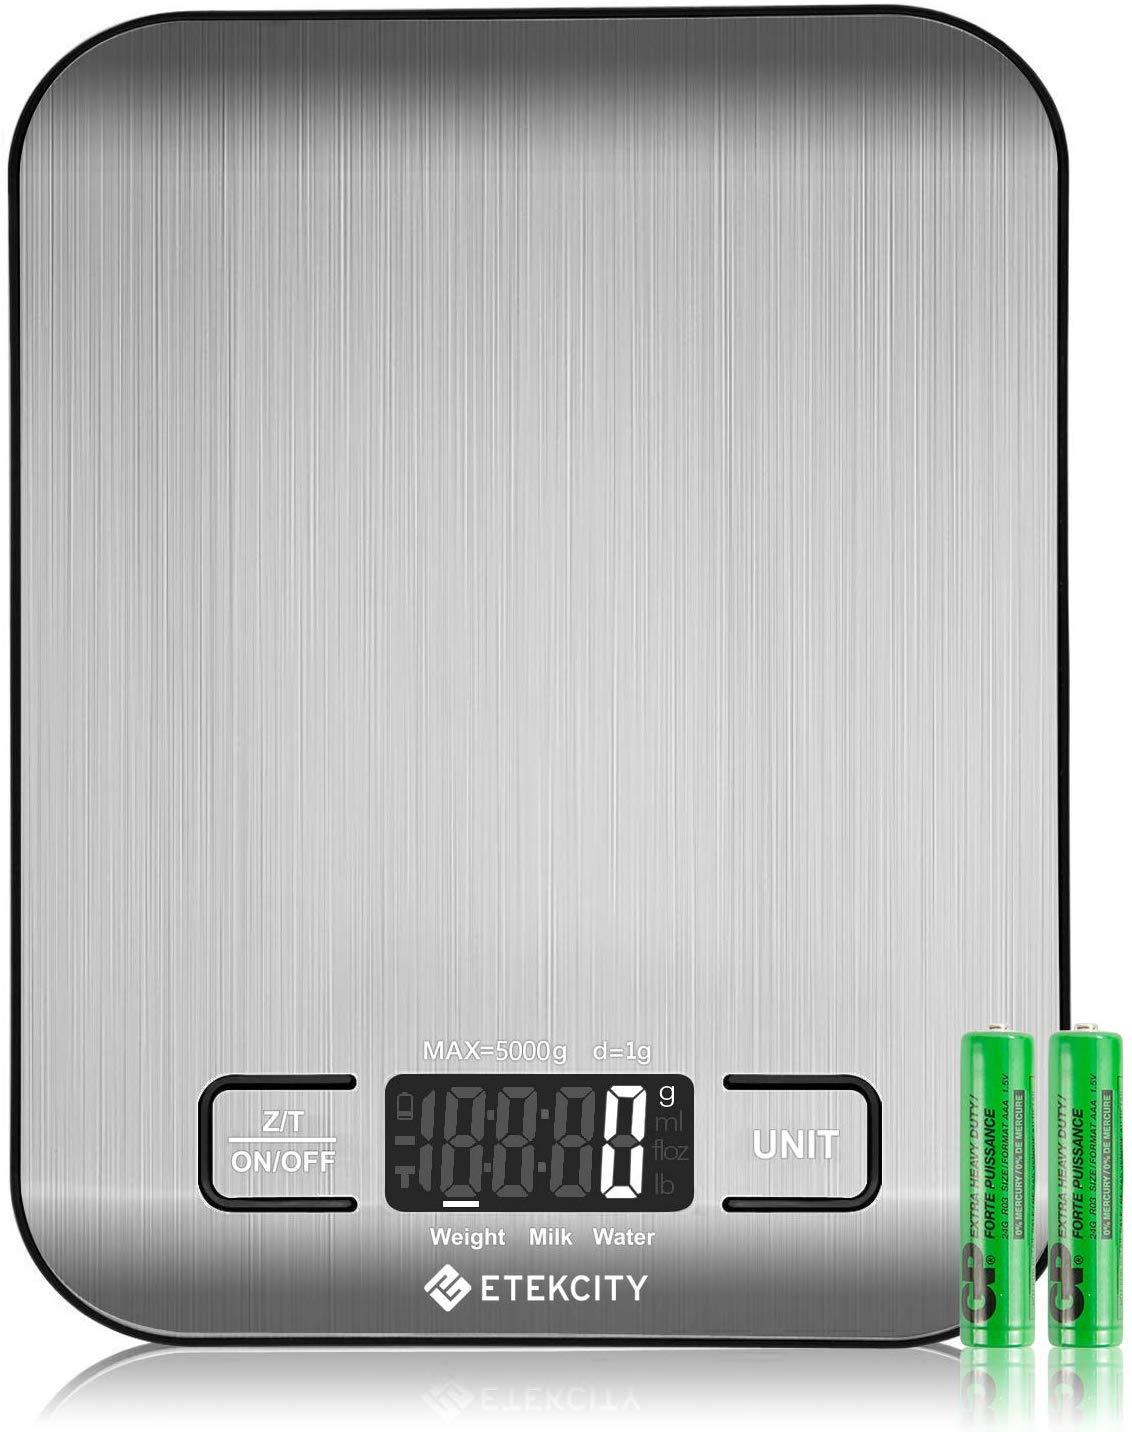 Etekcity digital multifunction stainless steel kitchen food scale